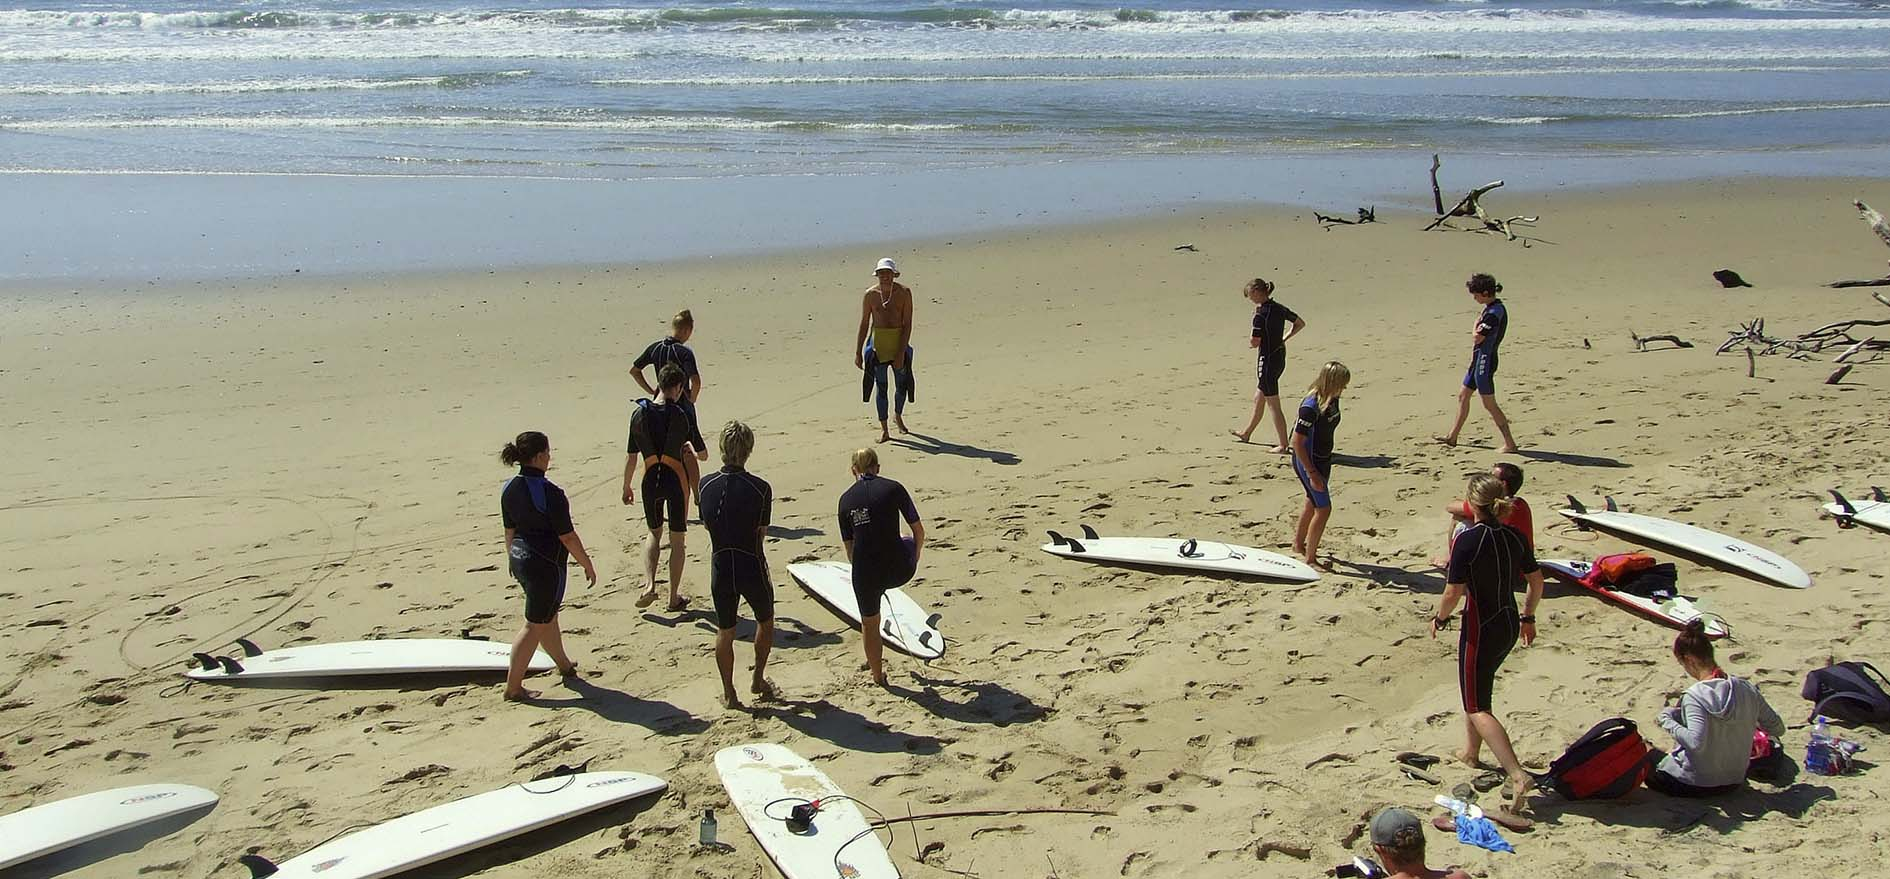 surf school bg